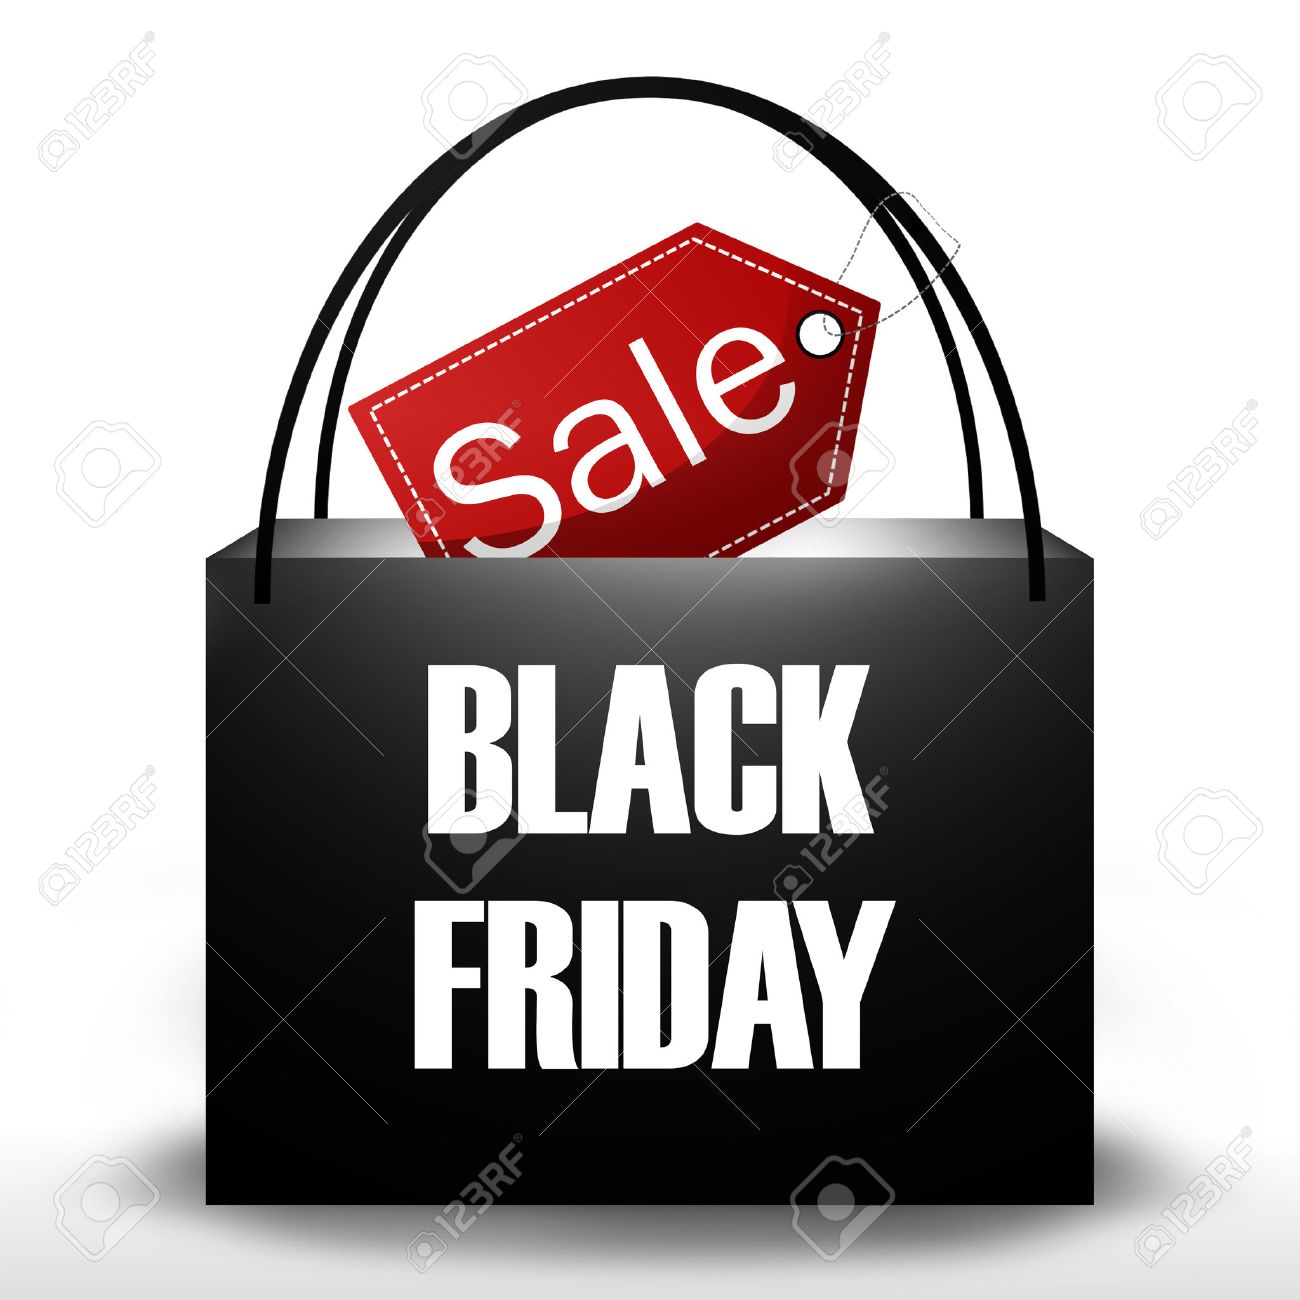 1300x1300 Friday Images Amp Stock Pictures. Royalty Free Friday Photos